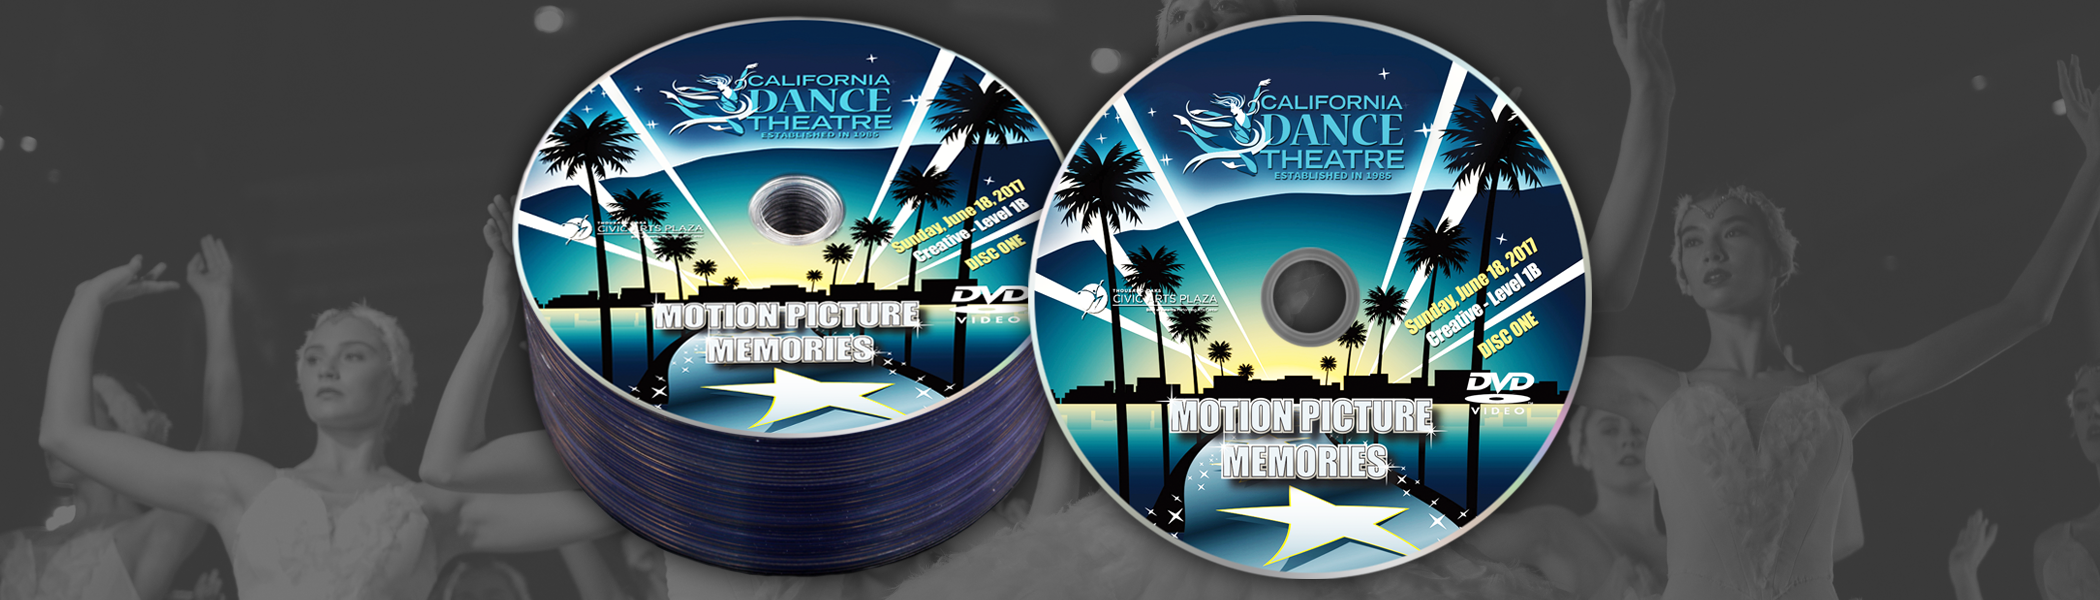 DVD Duplication & Printing